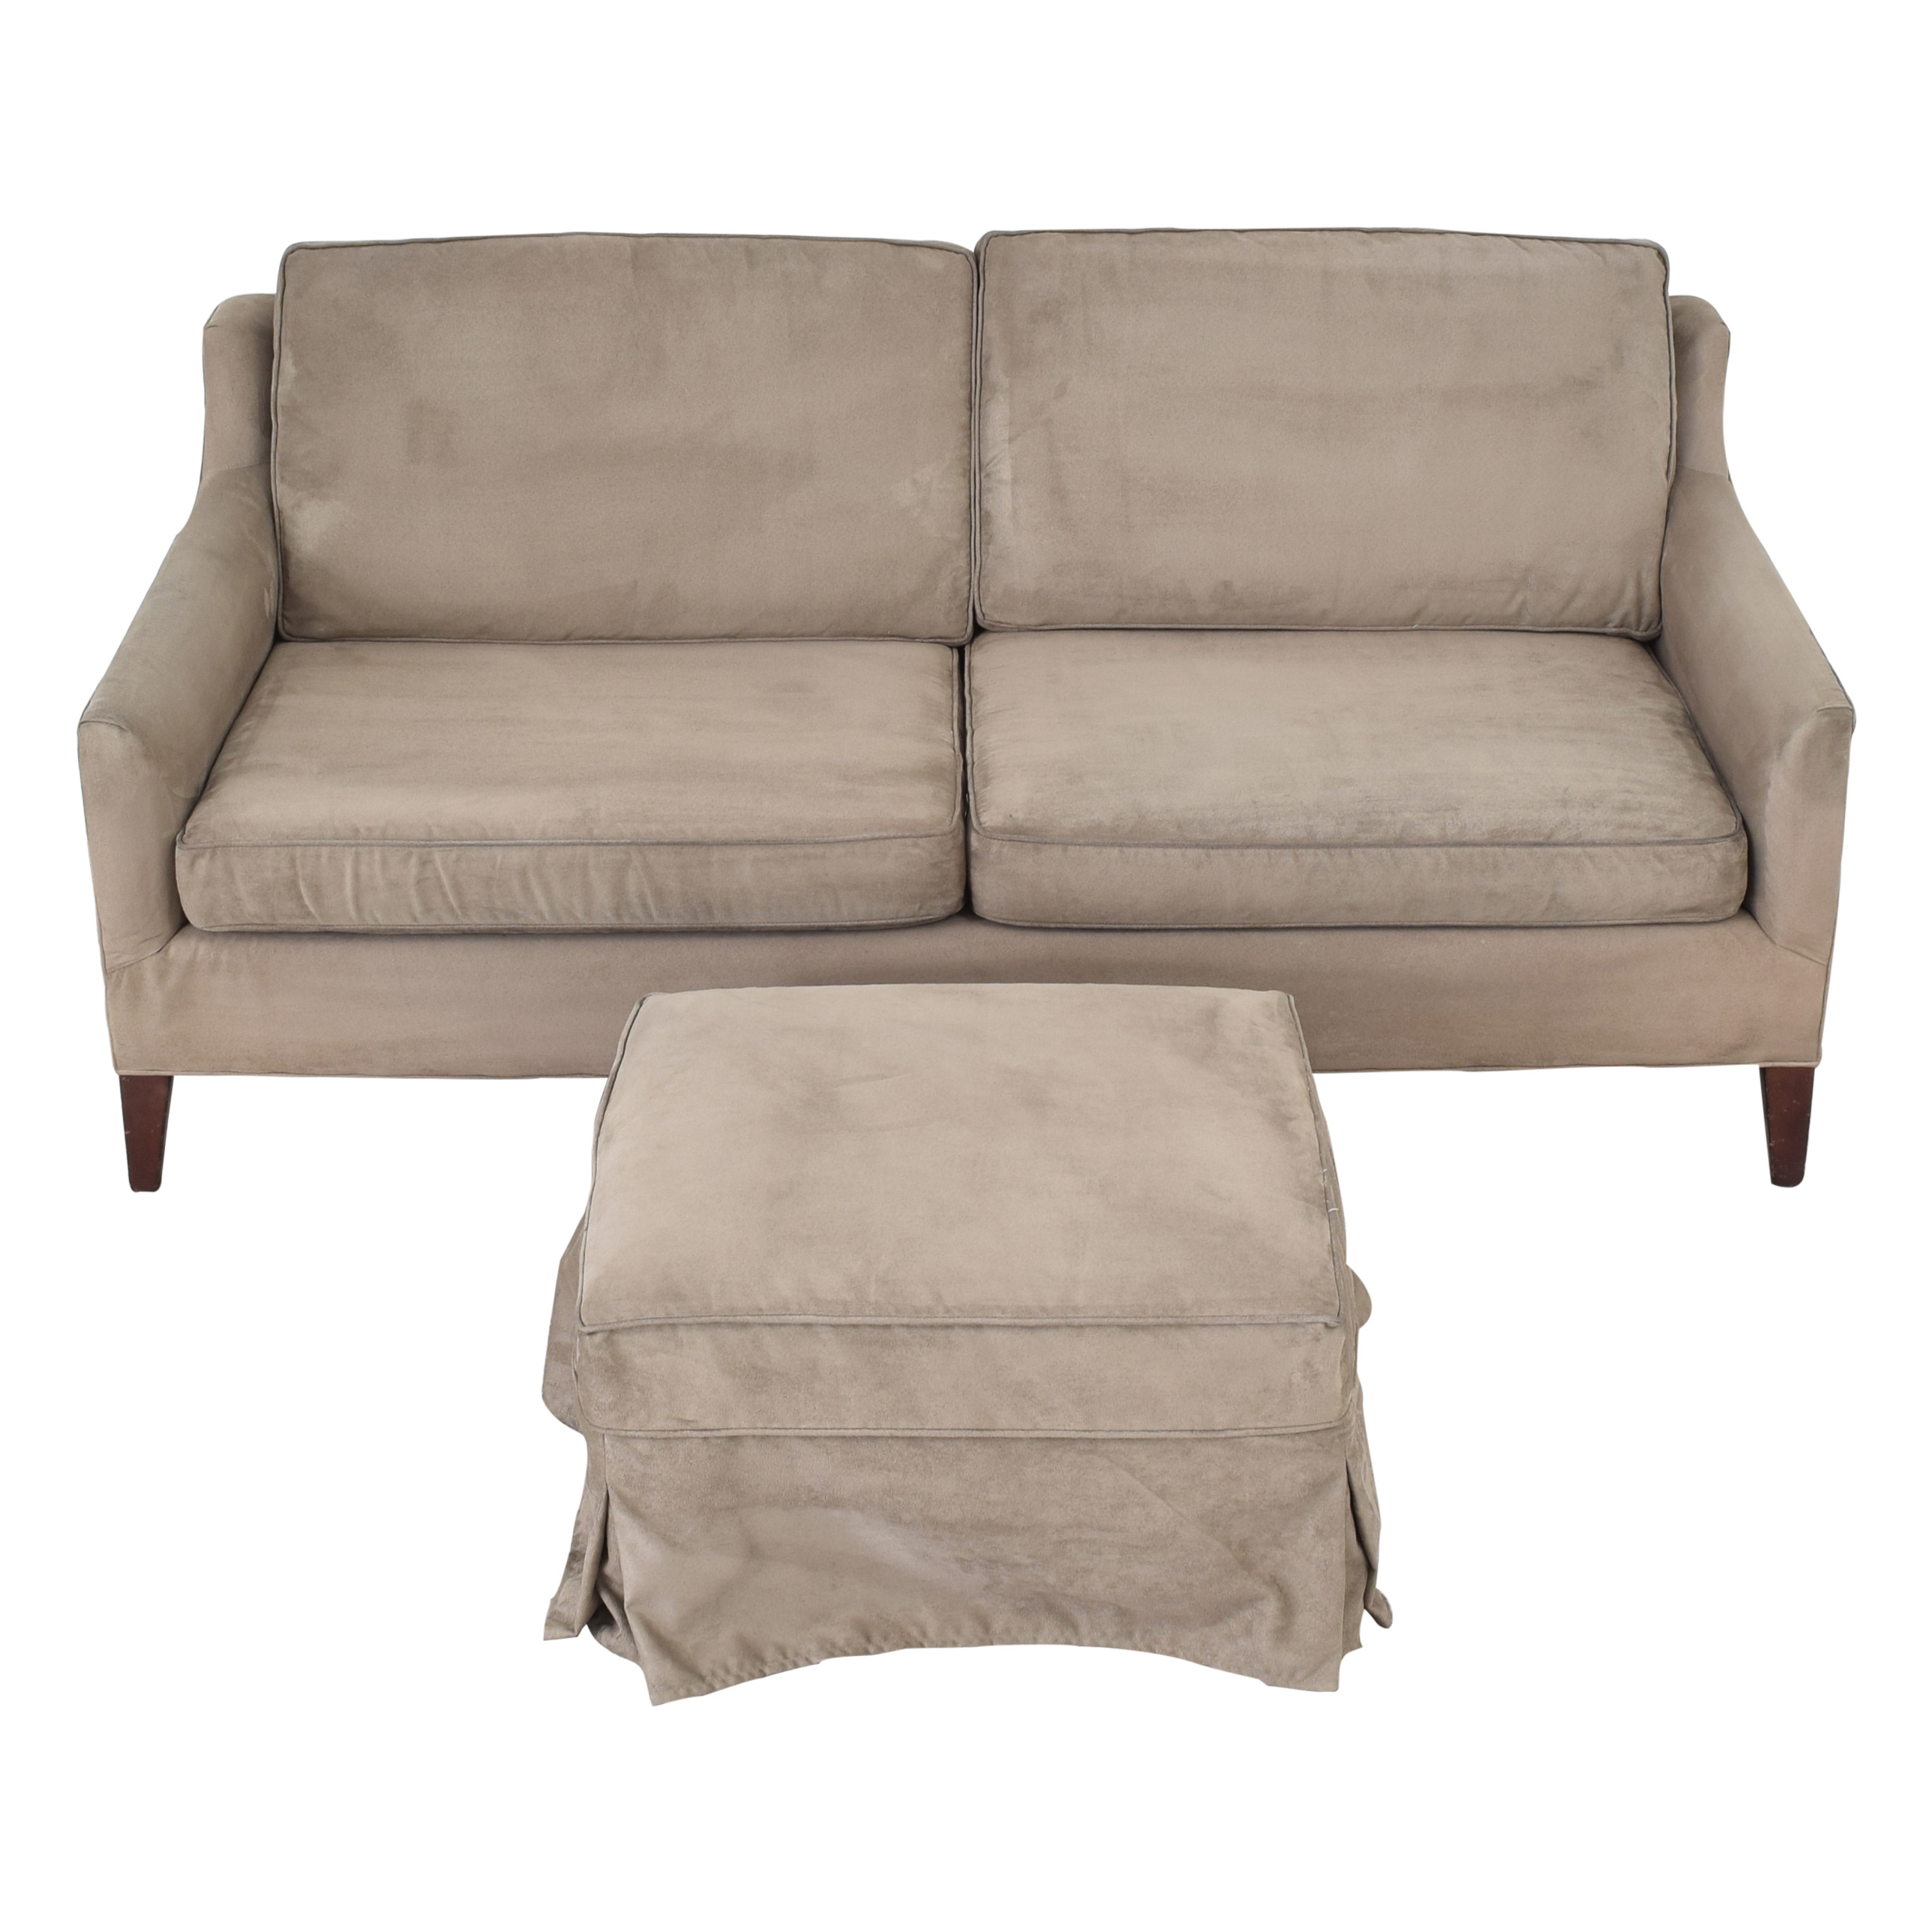 Mitchell Gold + Bob Williams Mitchell Gold + Bob Williams Taylor Apartment Sofa with Ottoman ct